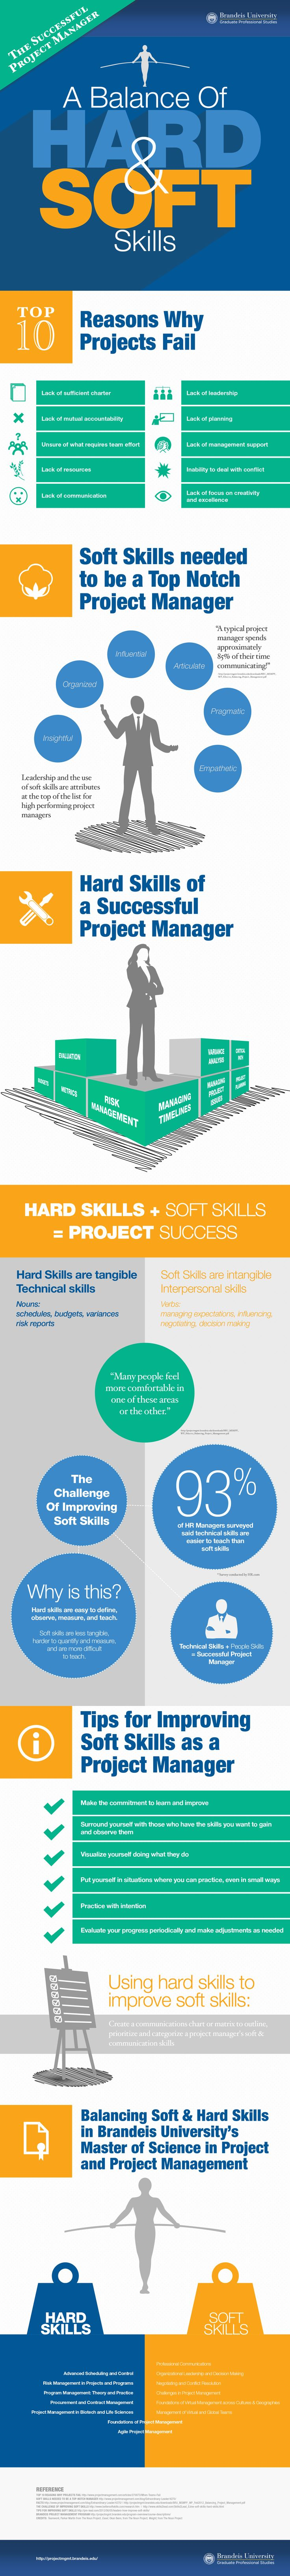 Best 25 project management professional ideas on pinterest successful project management balances hard and soft skills infographic xflitez Image collections